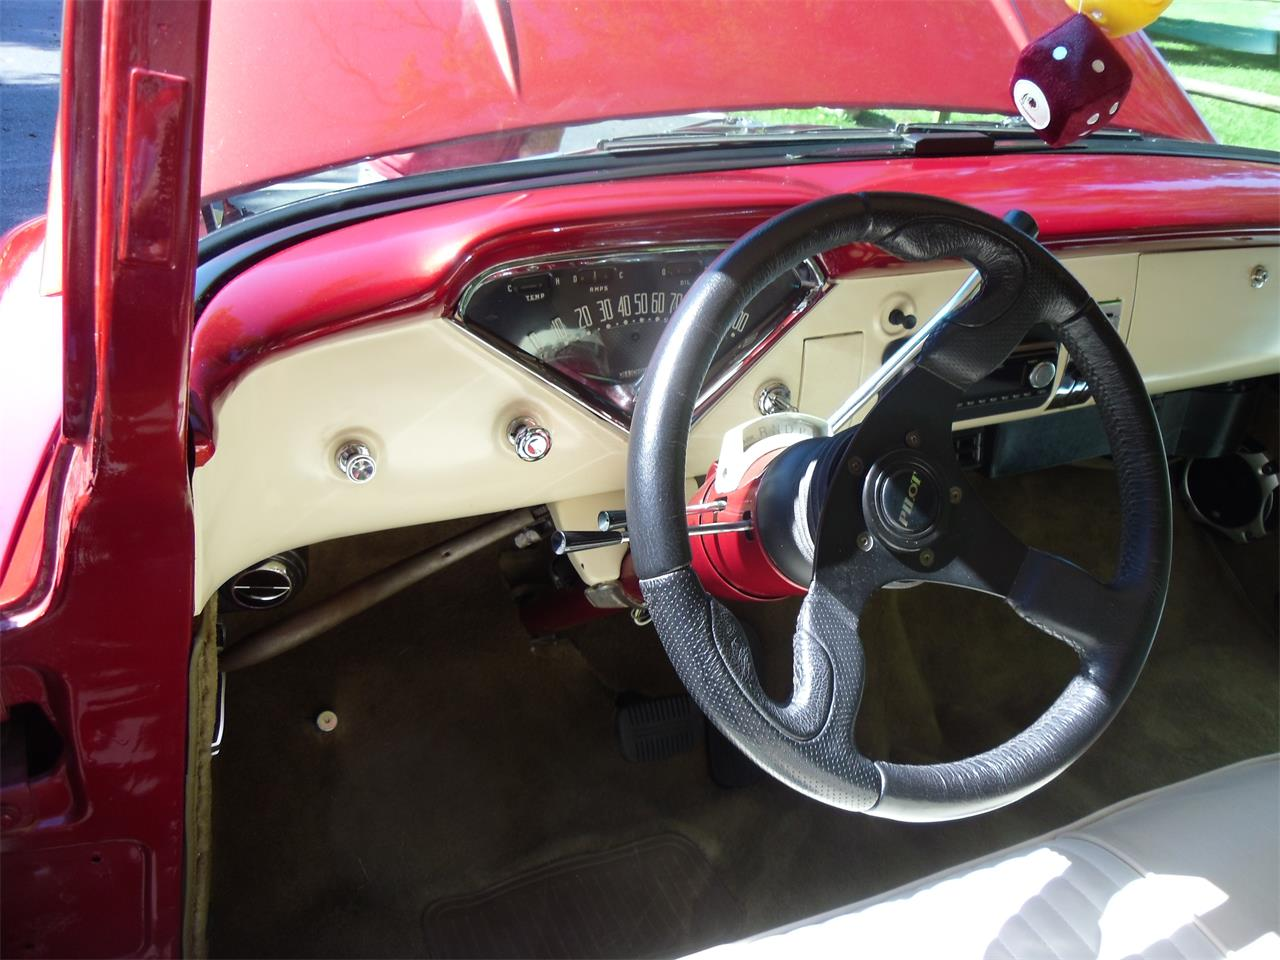 Large Picture of '57 Chevrolet 3100 located in Virginia - $50,000.00 Offered by a Private Seller - F250